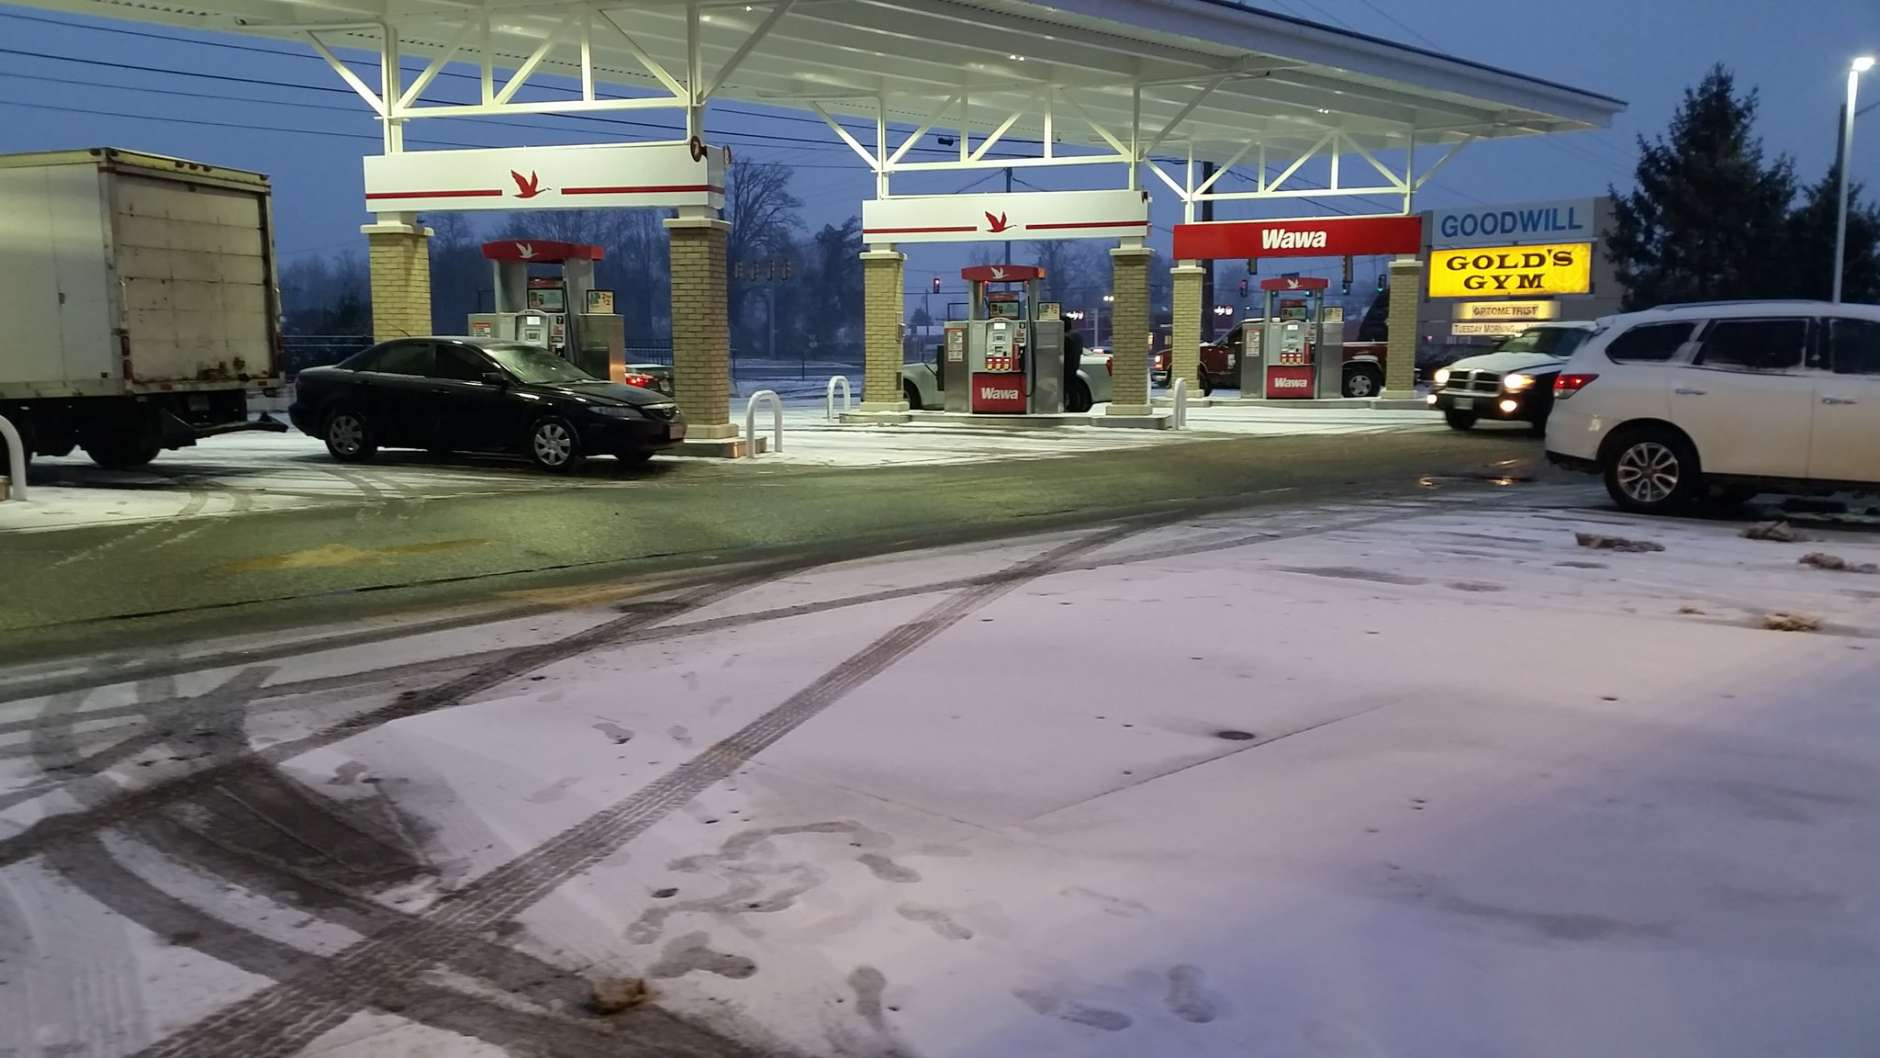 A worker at a Wawa in Fredericksburg, Va., told WTOP's Kathy Stewart Saturday morning that they were worried about driving home due to winter weather conditions. The Virginia Department of Transportation urged people to stay off the roads Saturday. (WTOP/Kathy Stewart)